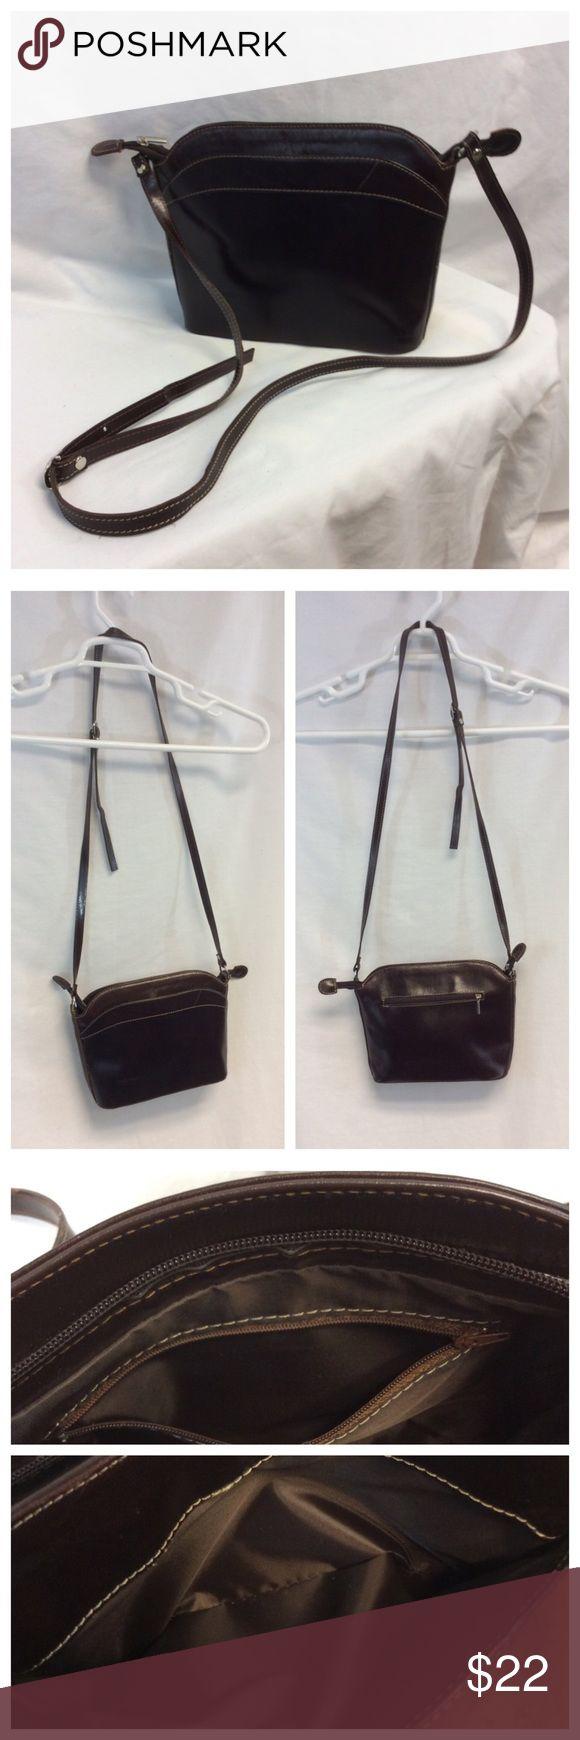 """VERA PELLE CROSSBODY BAG VERA PELLE Brown Crossbody Bag, made in Italy, believed to be leather. Approximate measurements are 7"""" X 10"""" X 2 1/2"""". There is a surface scratch in the leather as seen in bottom of last photograph. 0185 Vera Pelle Bags Crossbody Bags"""